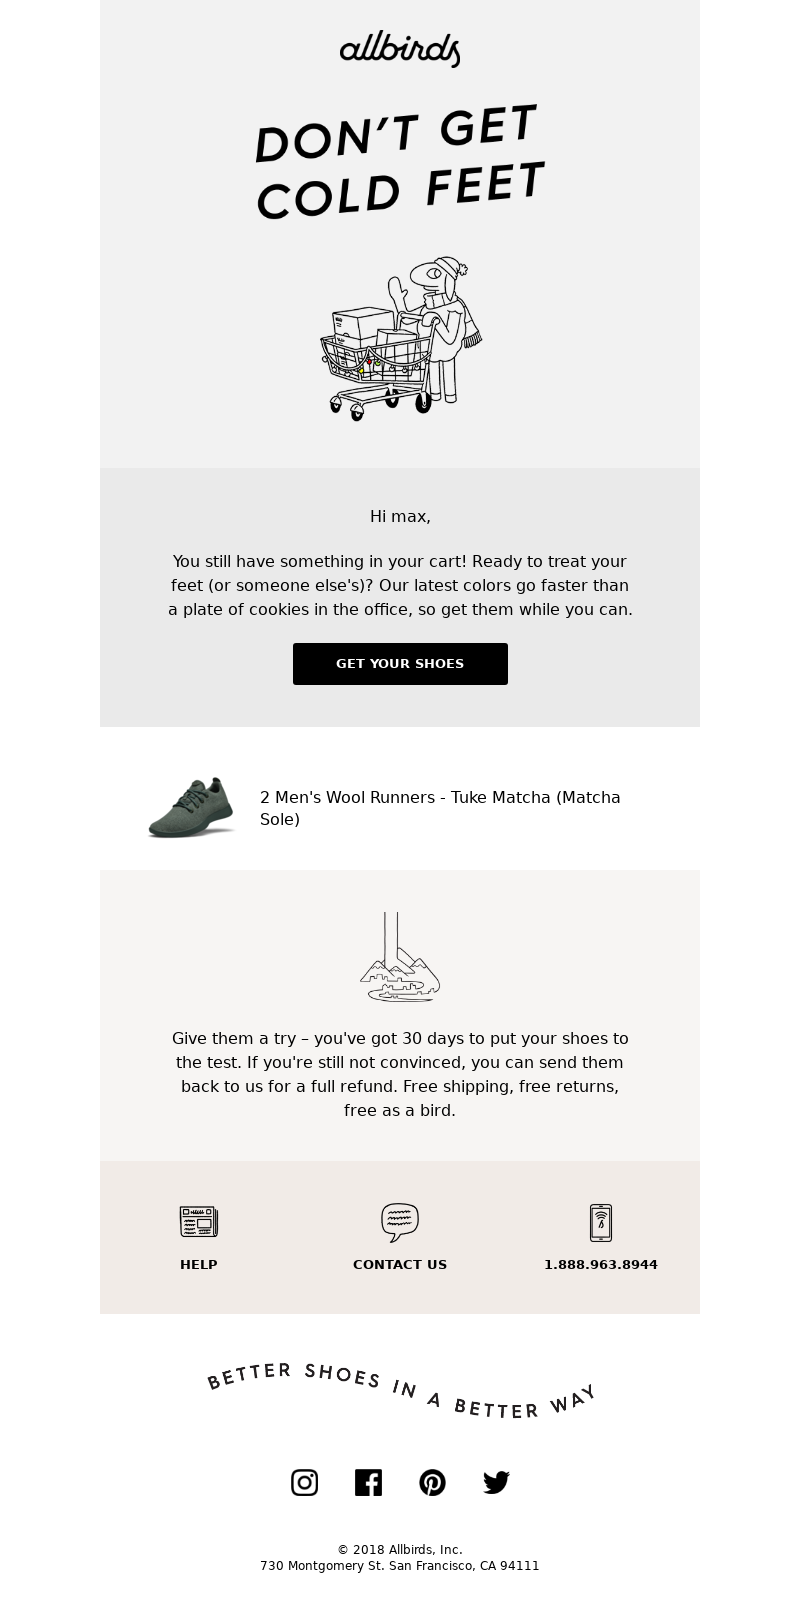 Abandoned cart email from Allbirds